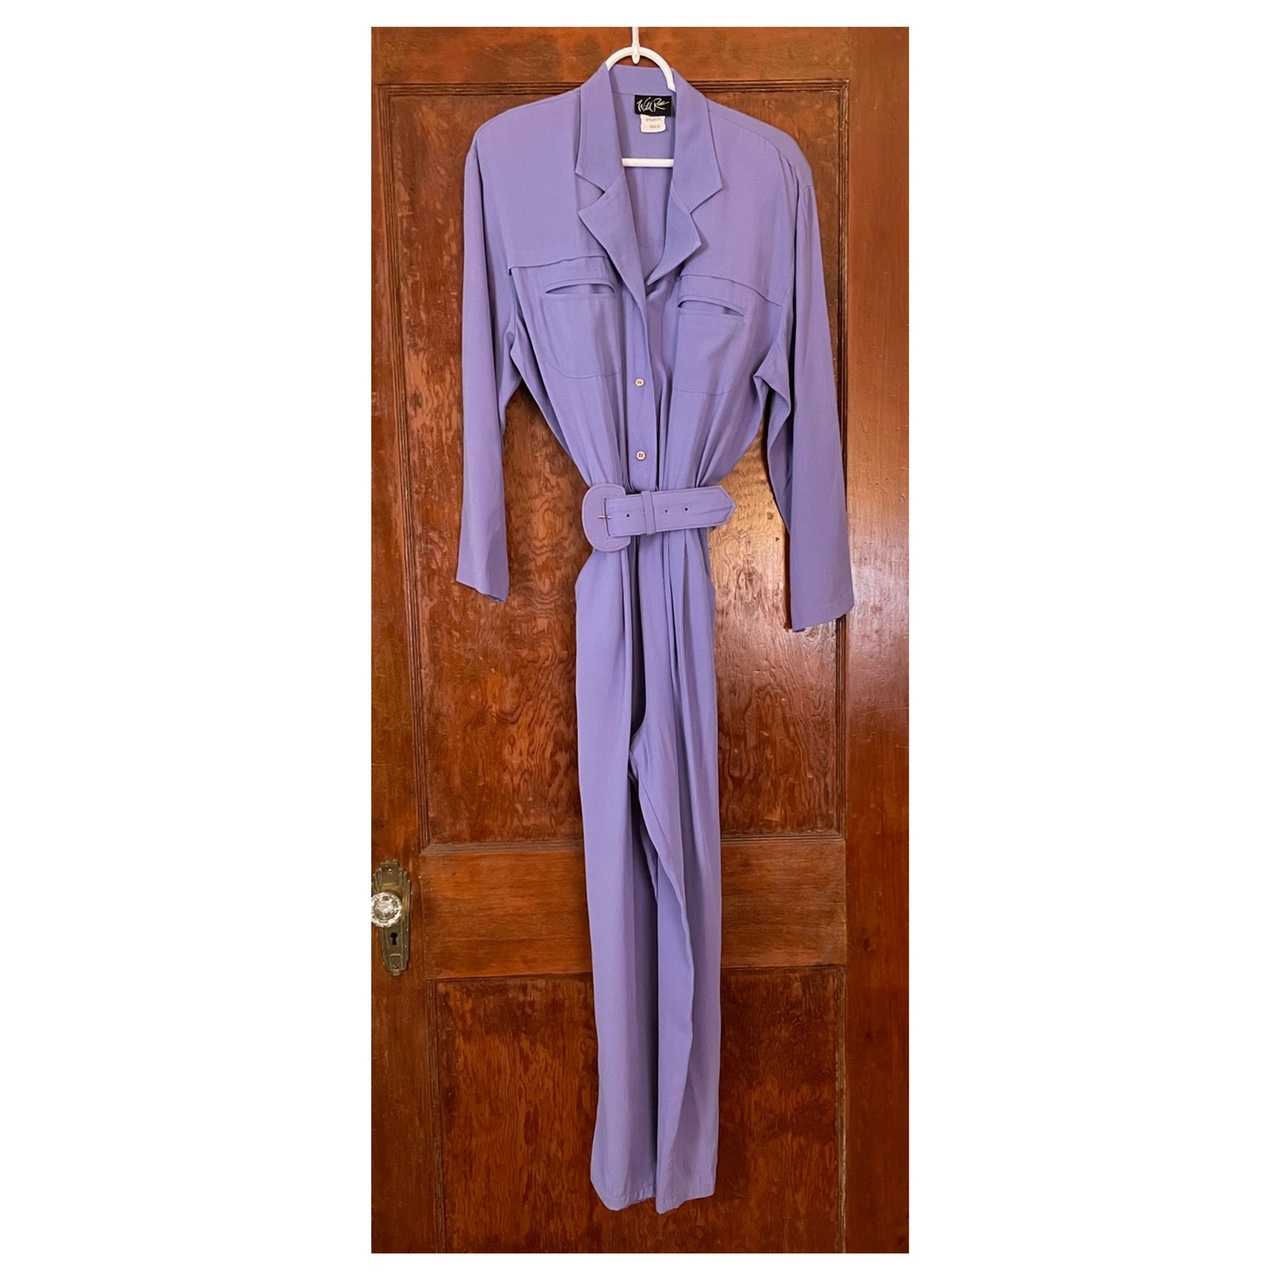 Product Image 1 - Absolutely fabulous lavender colored vintage